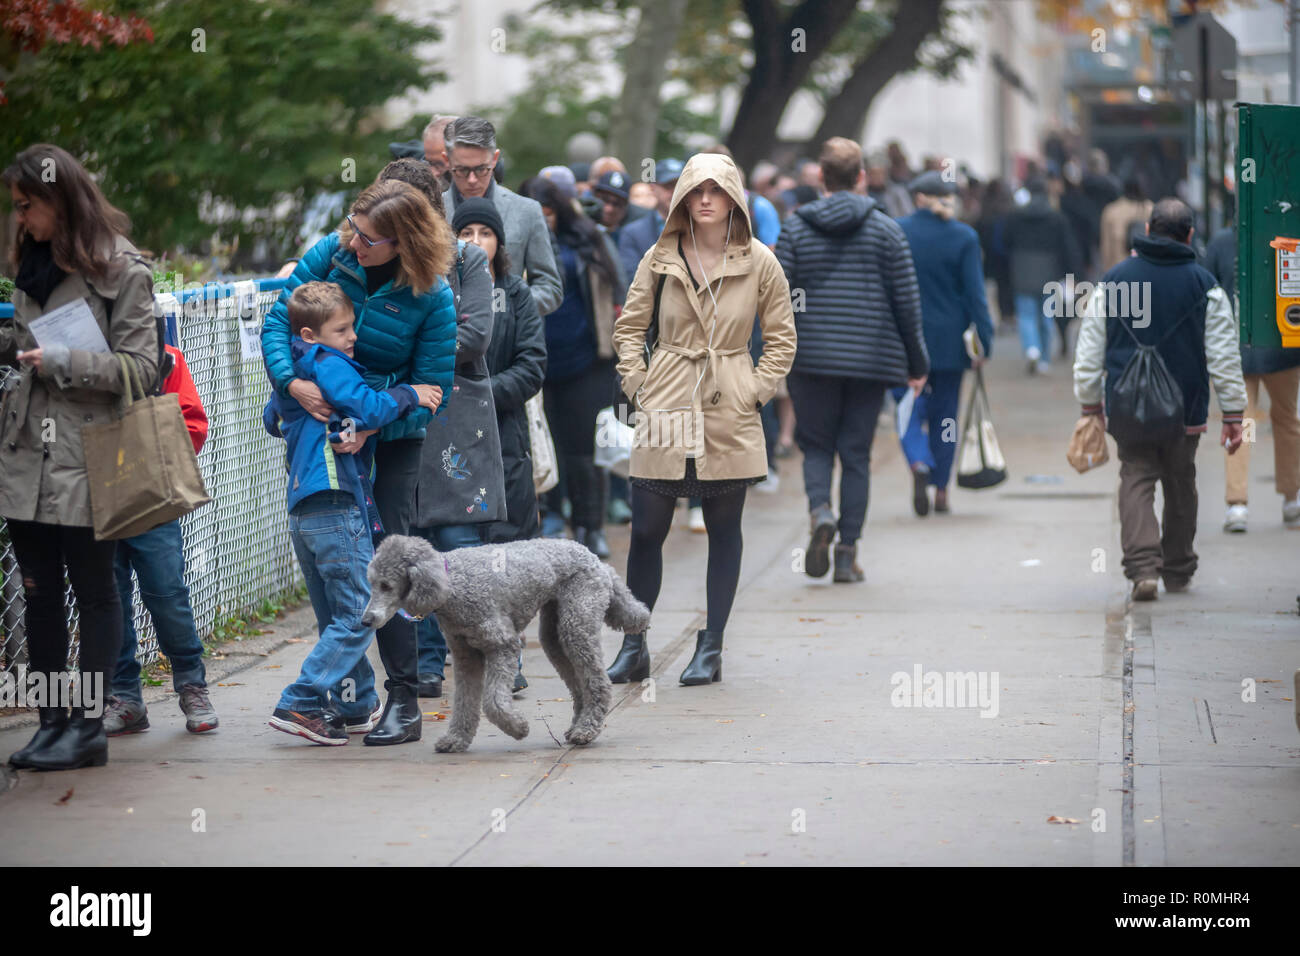 New York, USA. 6th November, 2018. Hundreds of voters wait in line to enter the PS33 polling station in the Chelsea neighborhood of New York on Election Day, Tuesday, November 6, 2018.  Credit: Richard Levine/Alamy Live News - Stock Image